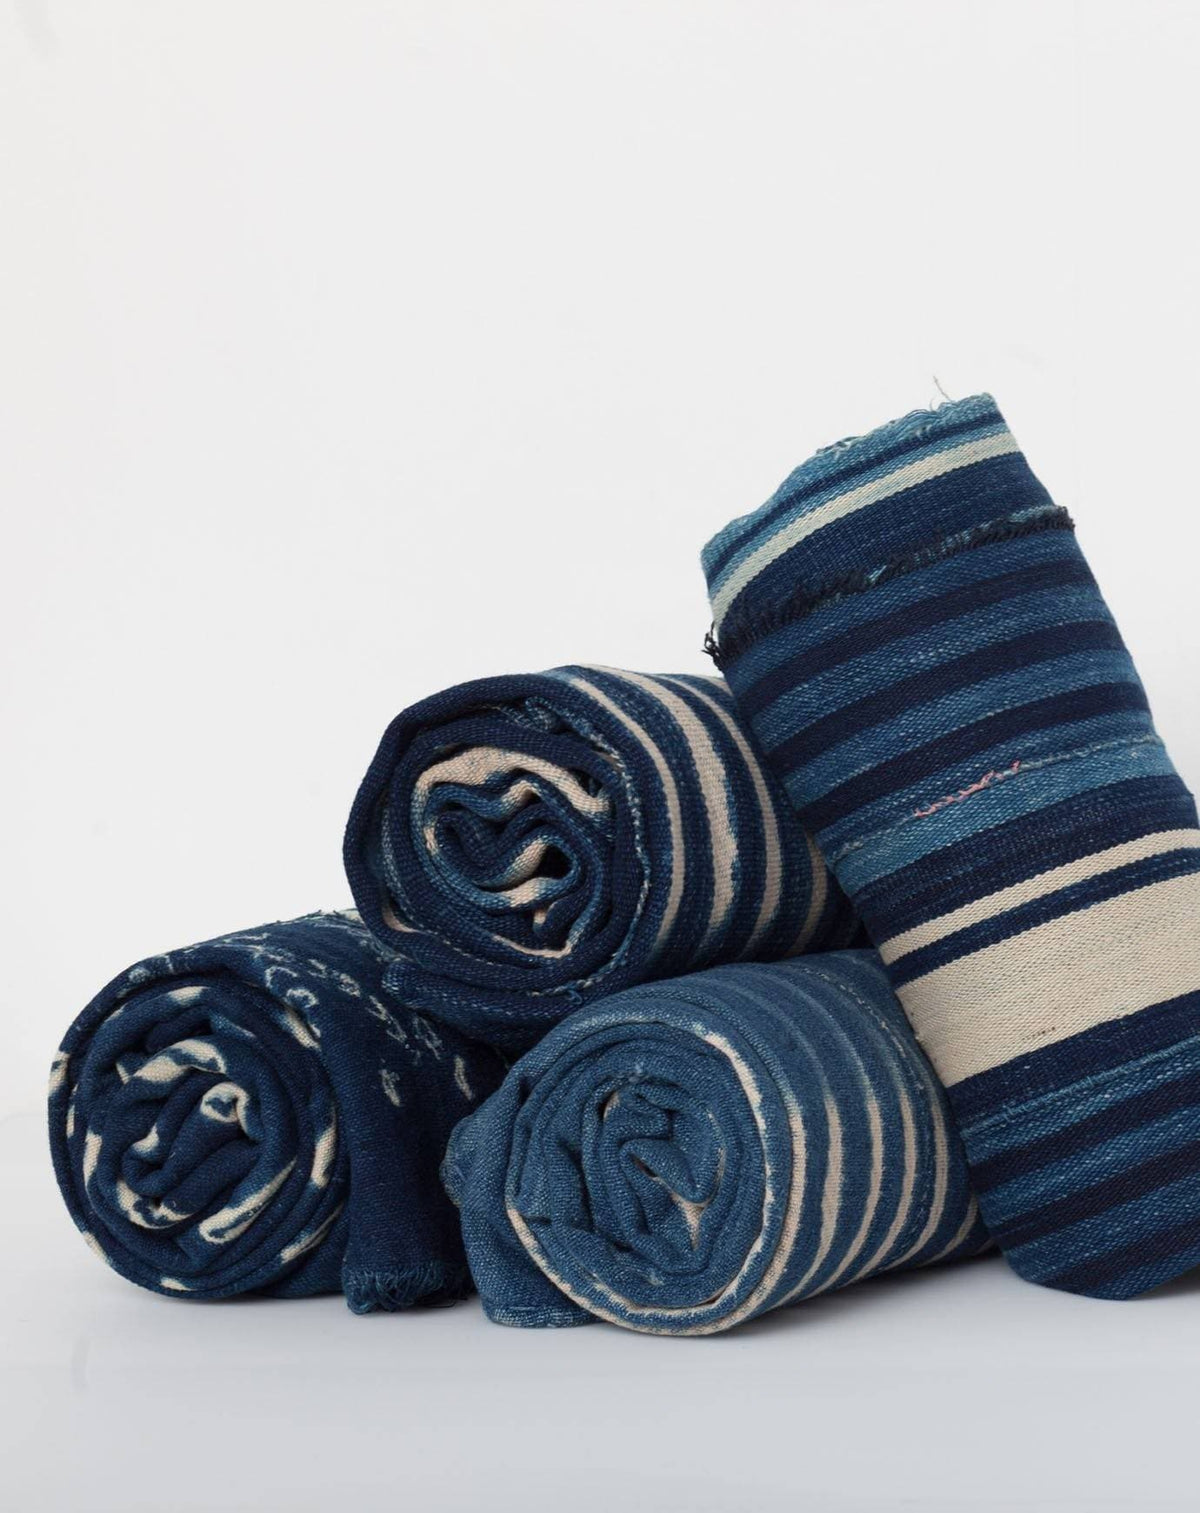 Striped Dyed Textile in Indigo